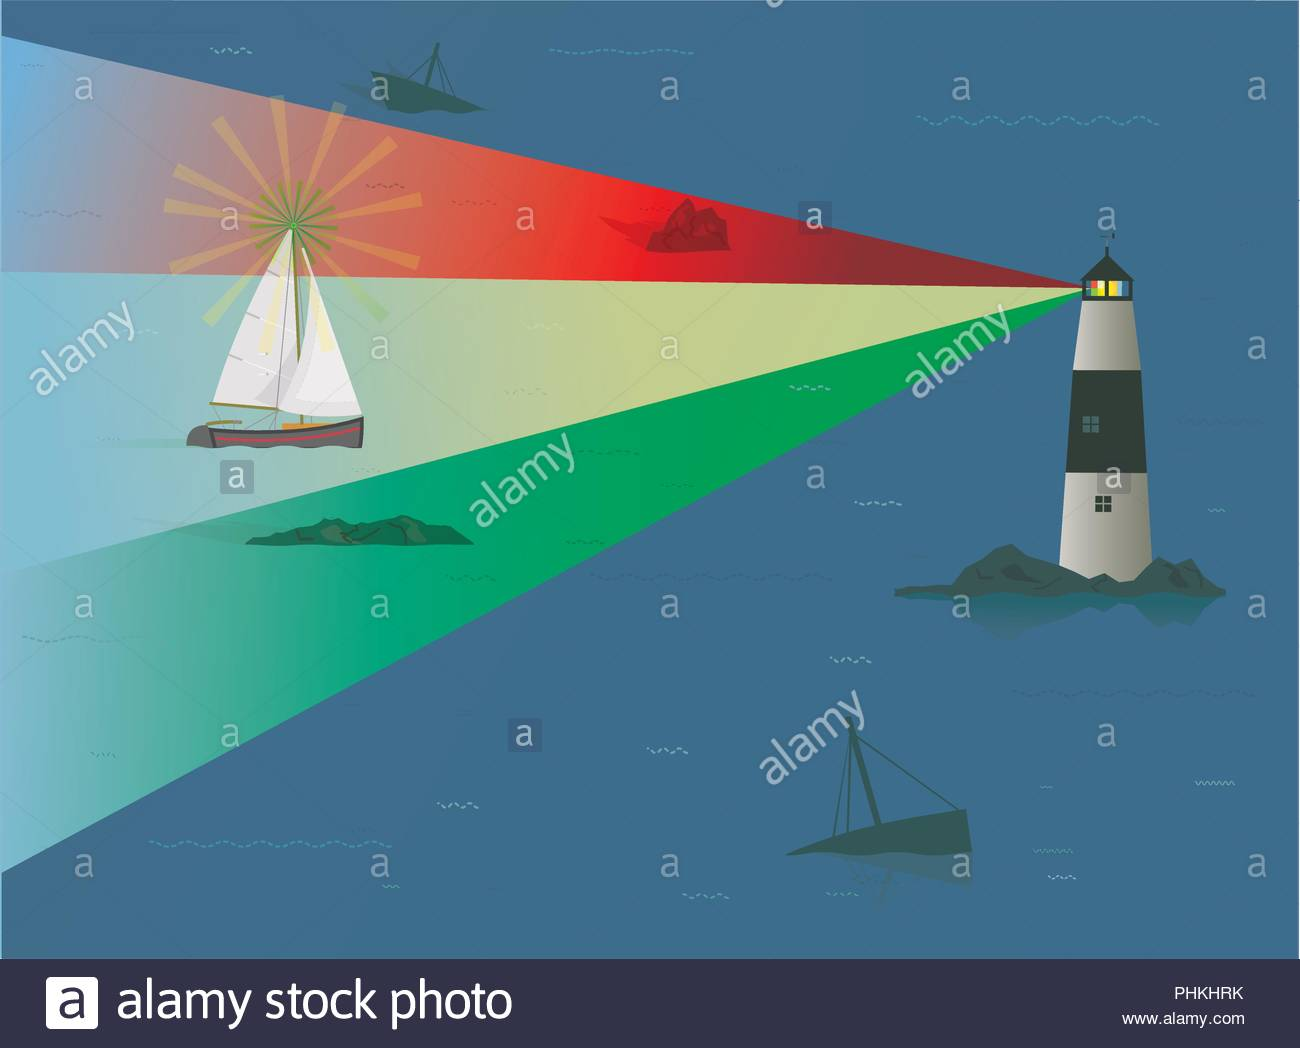 Sailboat being guided through Treacherous Rocks at Night by  Lighthouse, Risk Concept, Risk Management, Navigation, Guiding Lights, Timing, Beacon - Stock Image